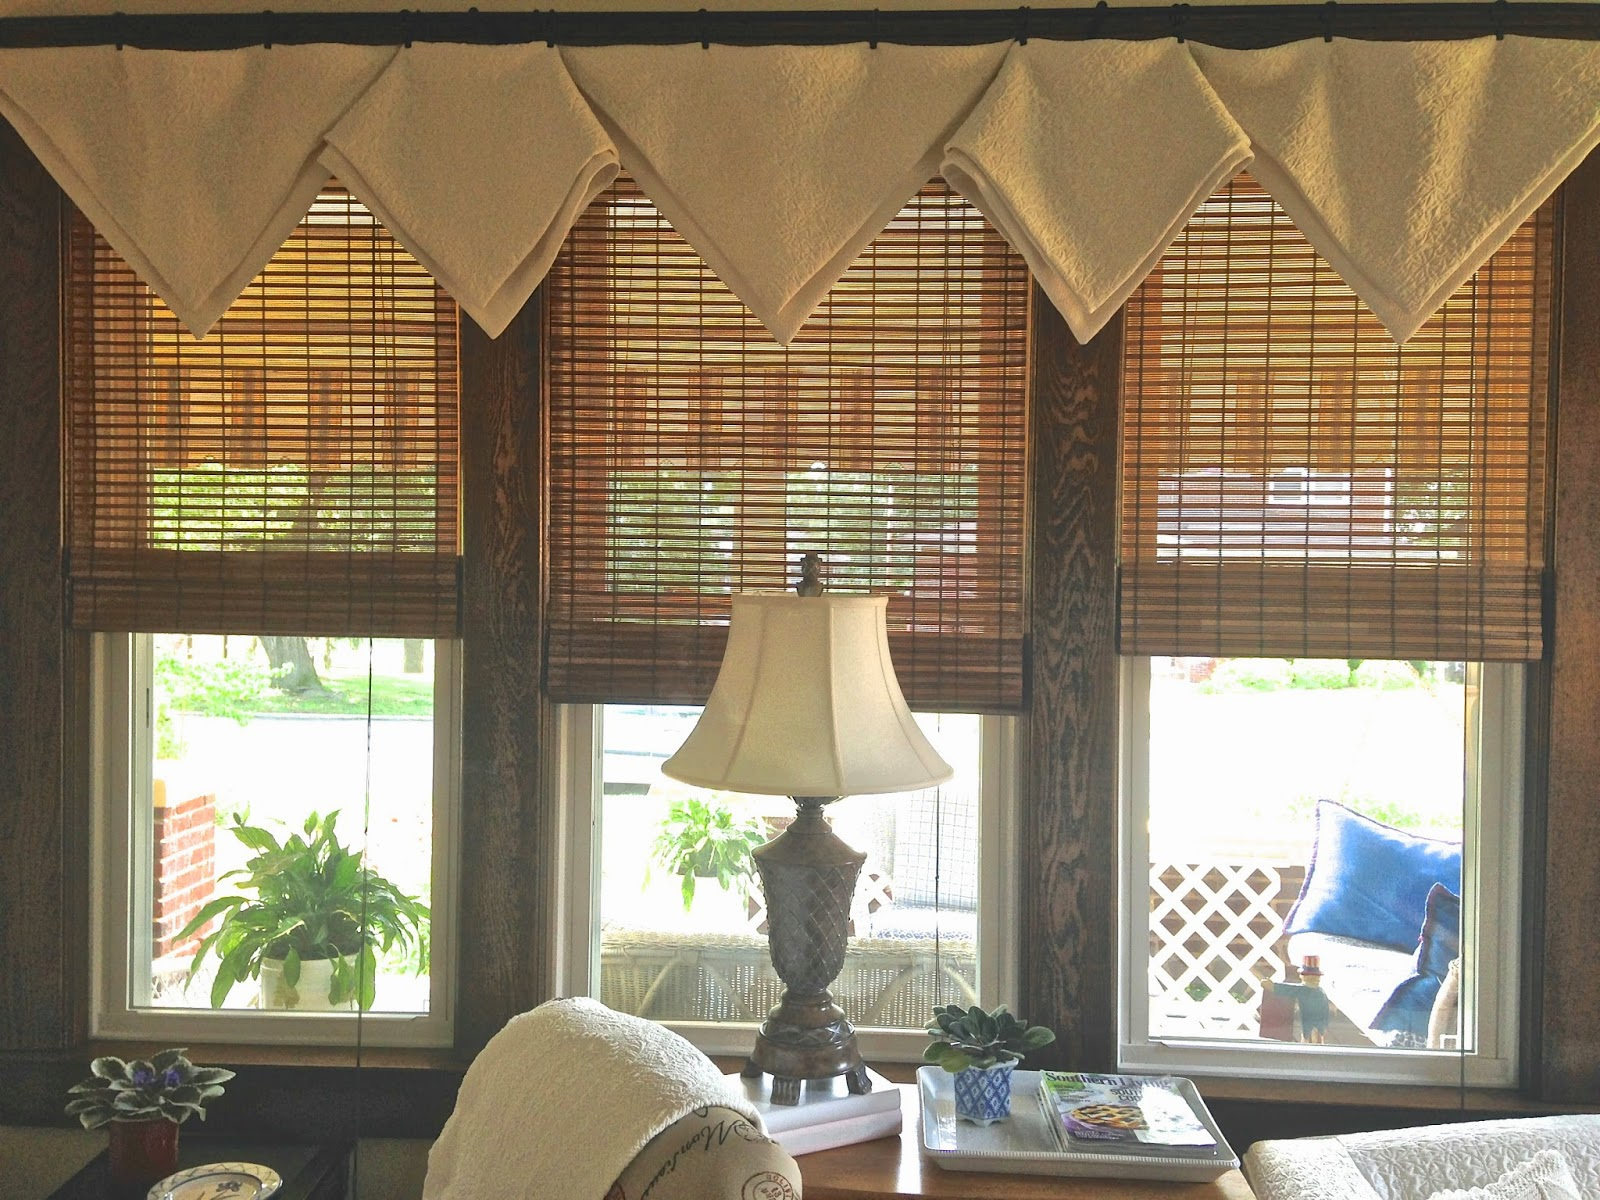 Days at buttermilk cottage simple new window treatment - Living room picture window treatments ...